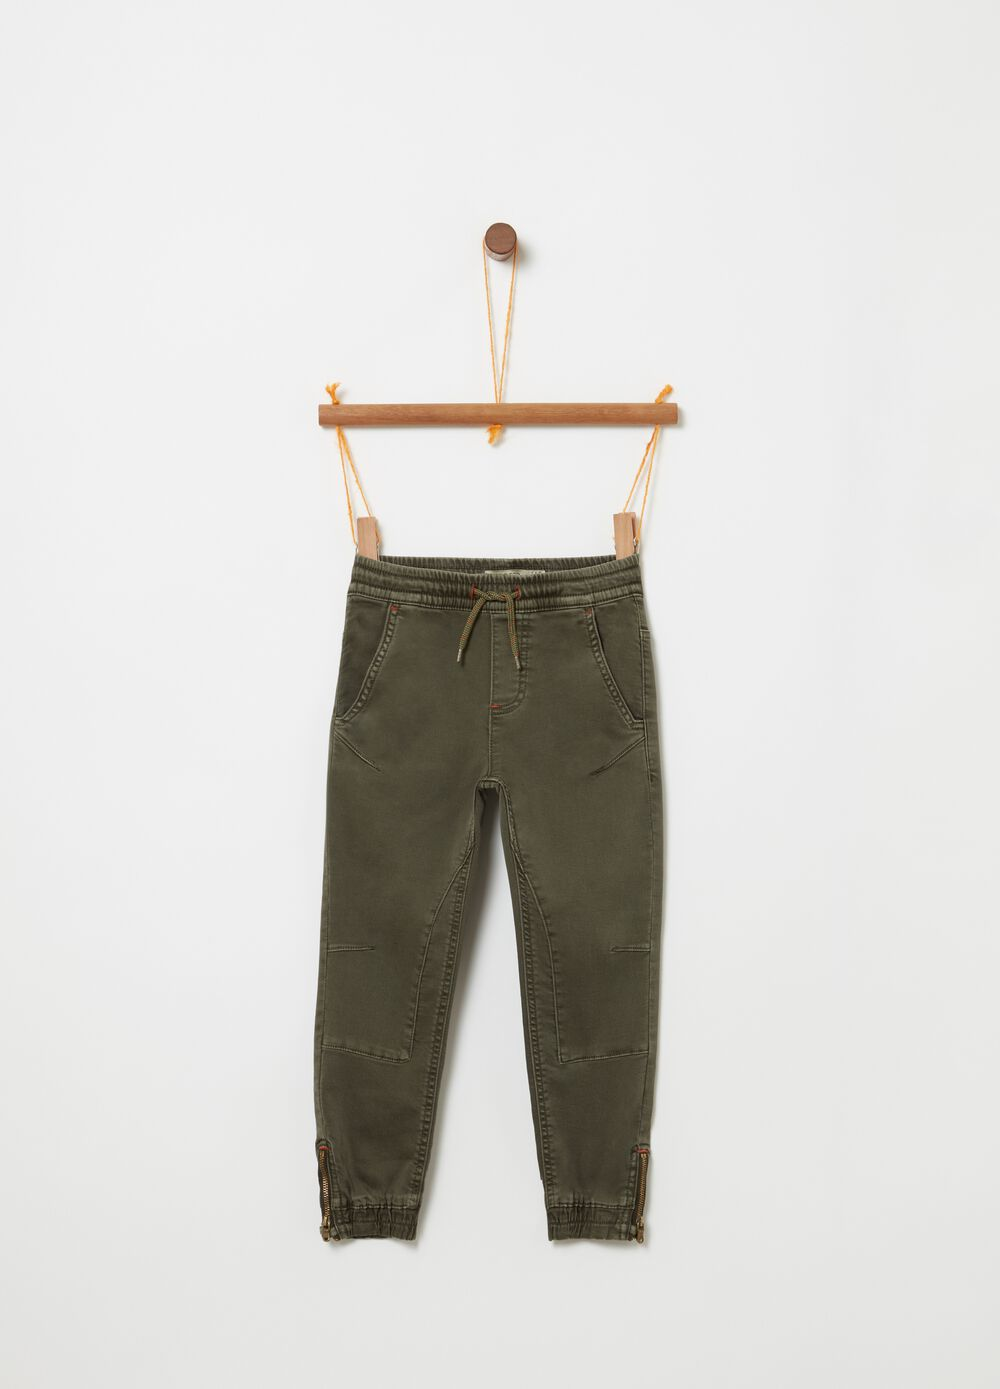 Joggers with drawstring, pockets and zip